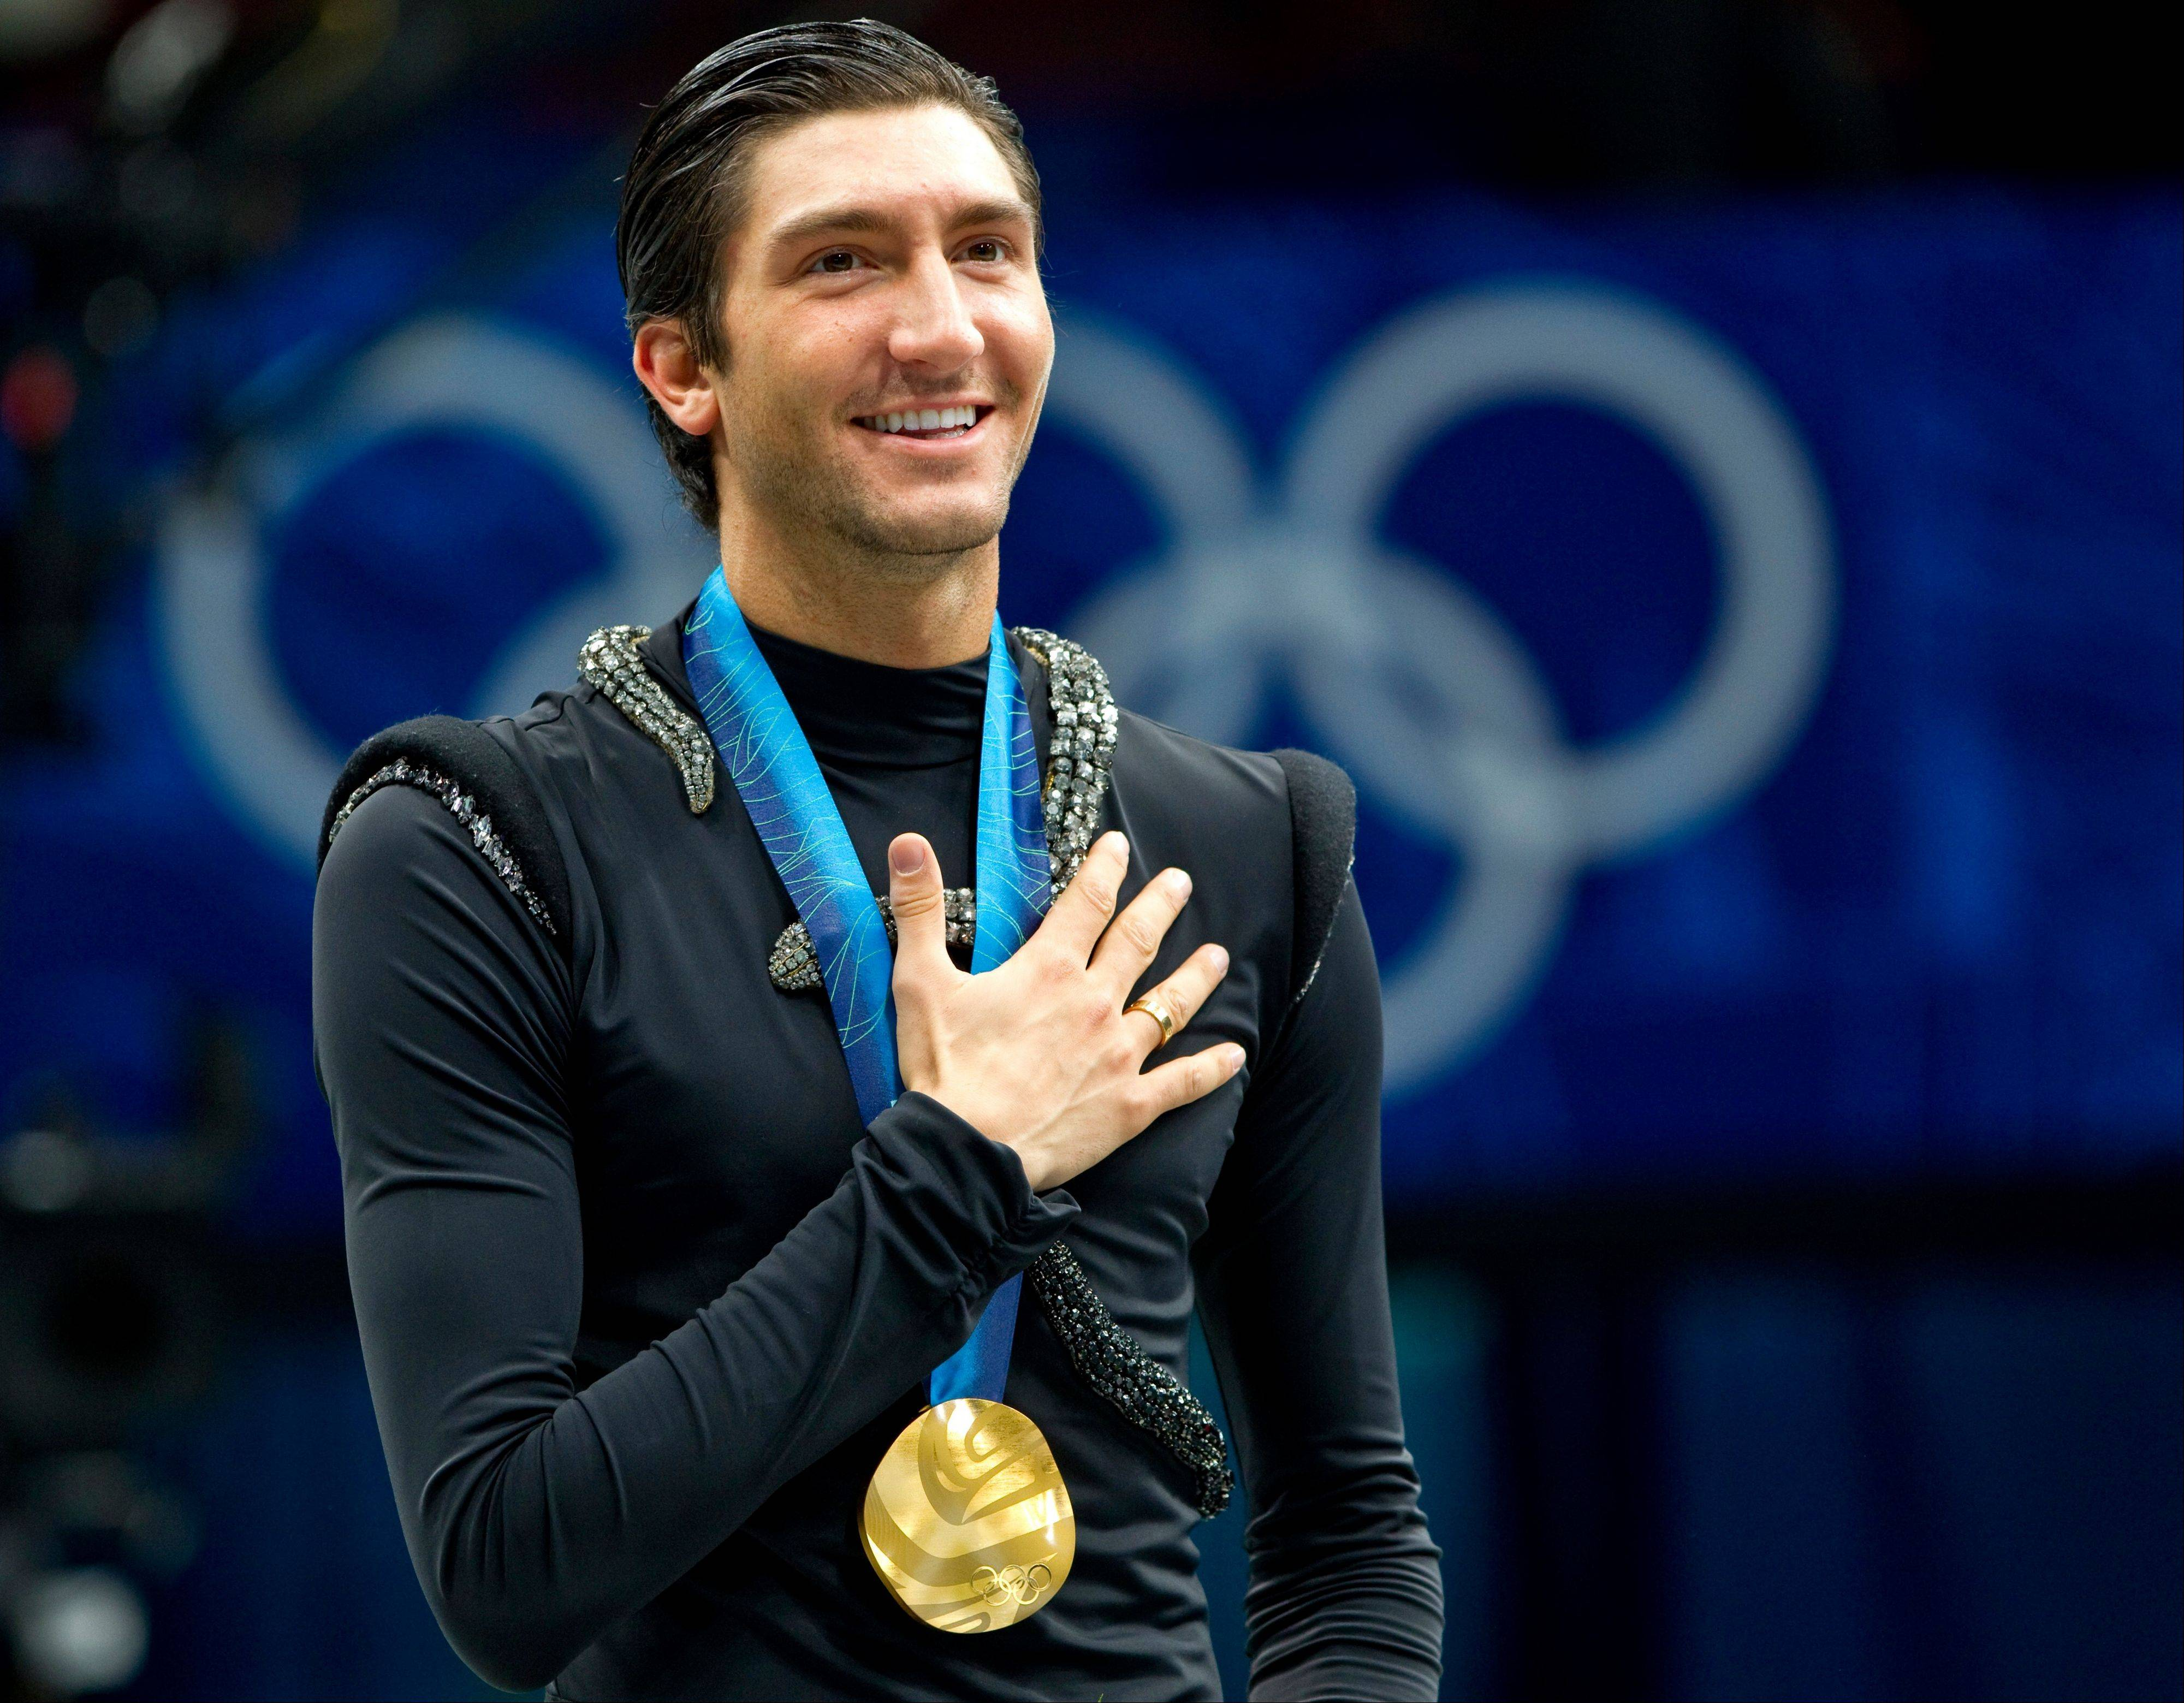 "Olympic gold medalist, and Naperville native, Evan Lysacek will be ""wearing many hats"" in Russia, and he might be more exhausted after these games than he was after competing four years ago. Lysacek is in Sochi working for NBC's""Today Show"" after injuries curtailed his attempt to make the U.S. team. At a men's practice session Thursday, he rattled off the elements needed to contend for Olympic gold."